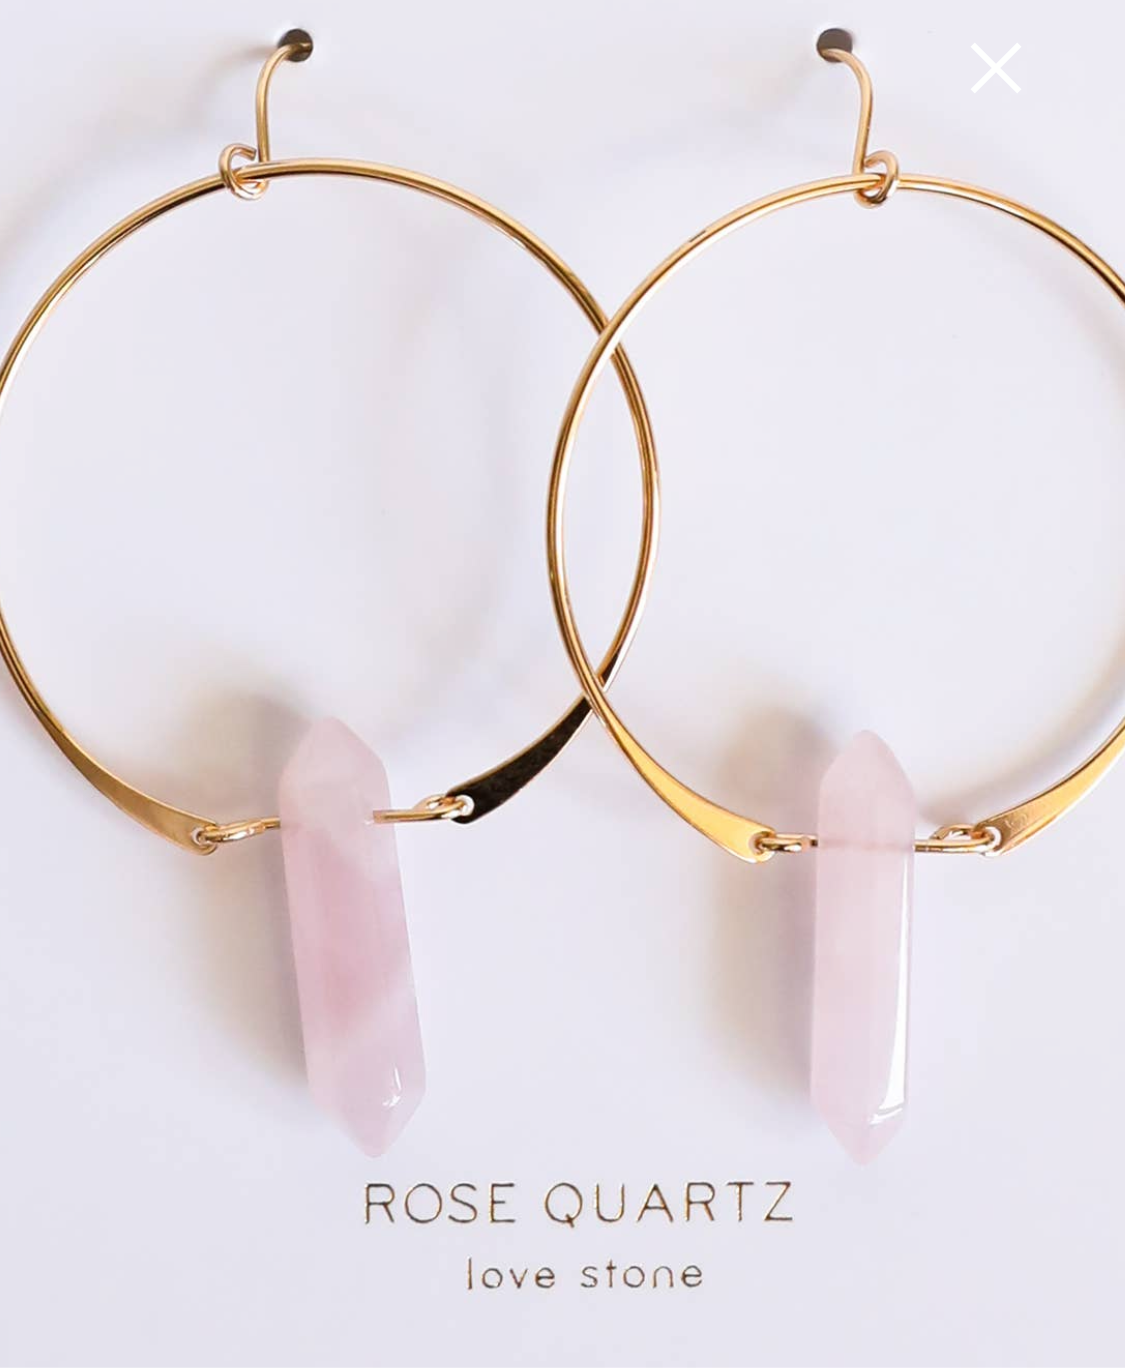 Rose Quartz in 14k gold hoops